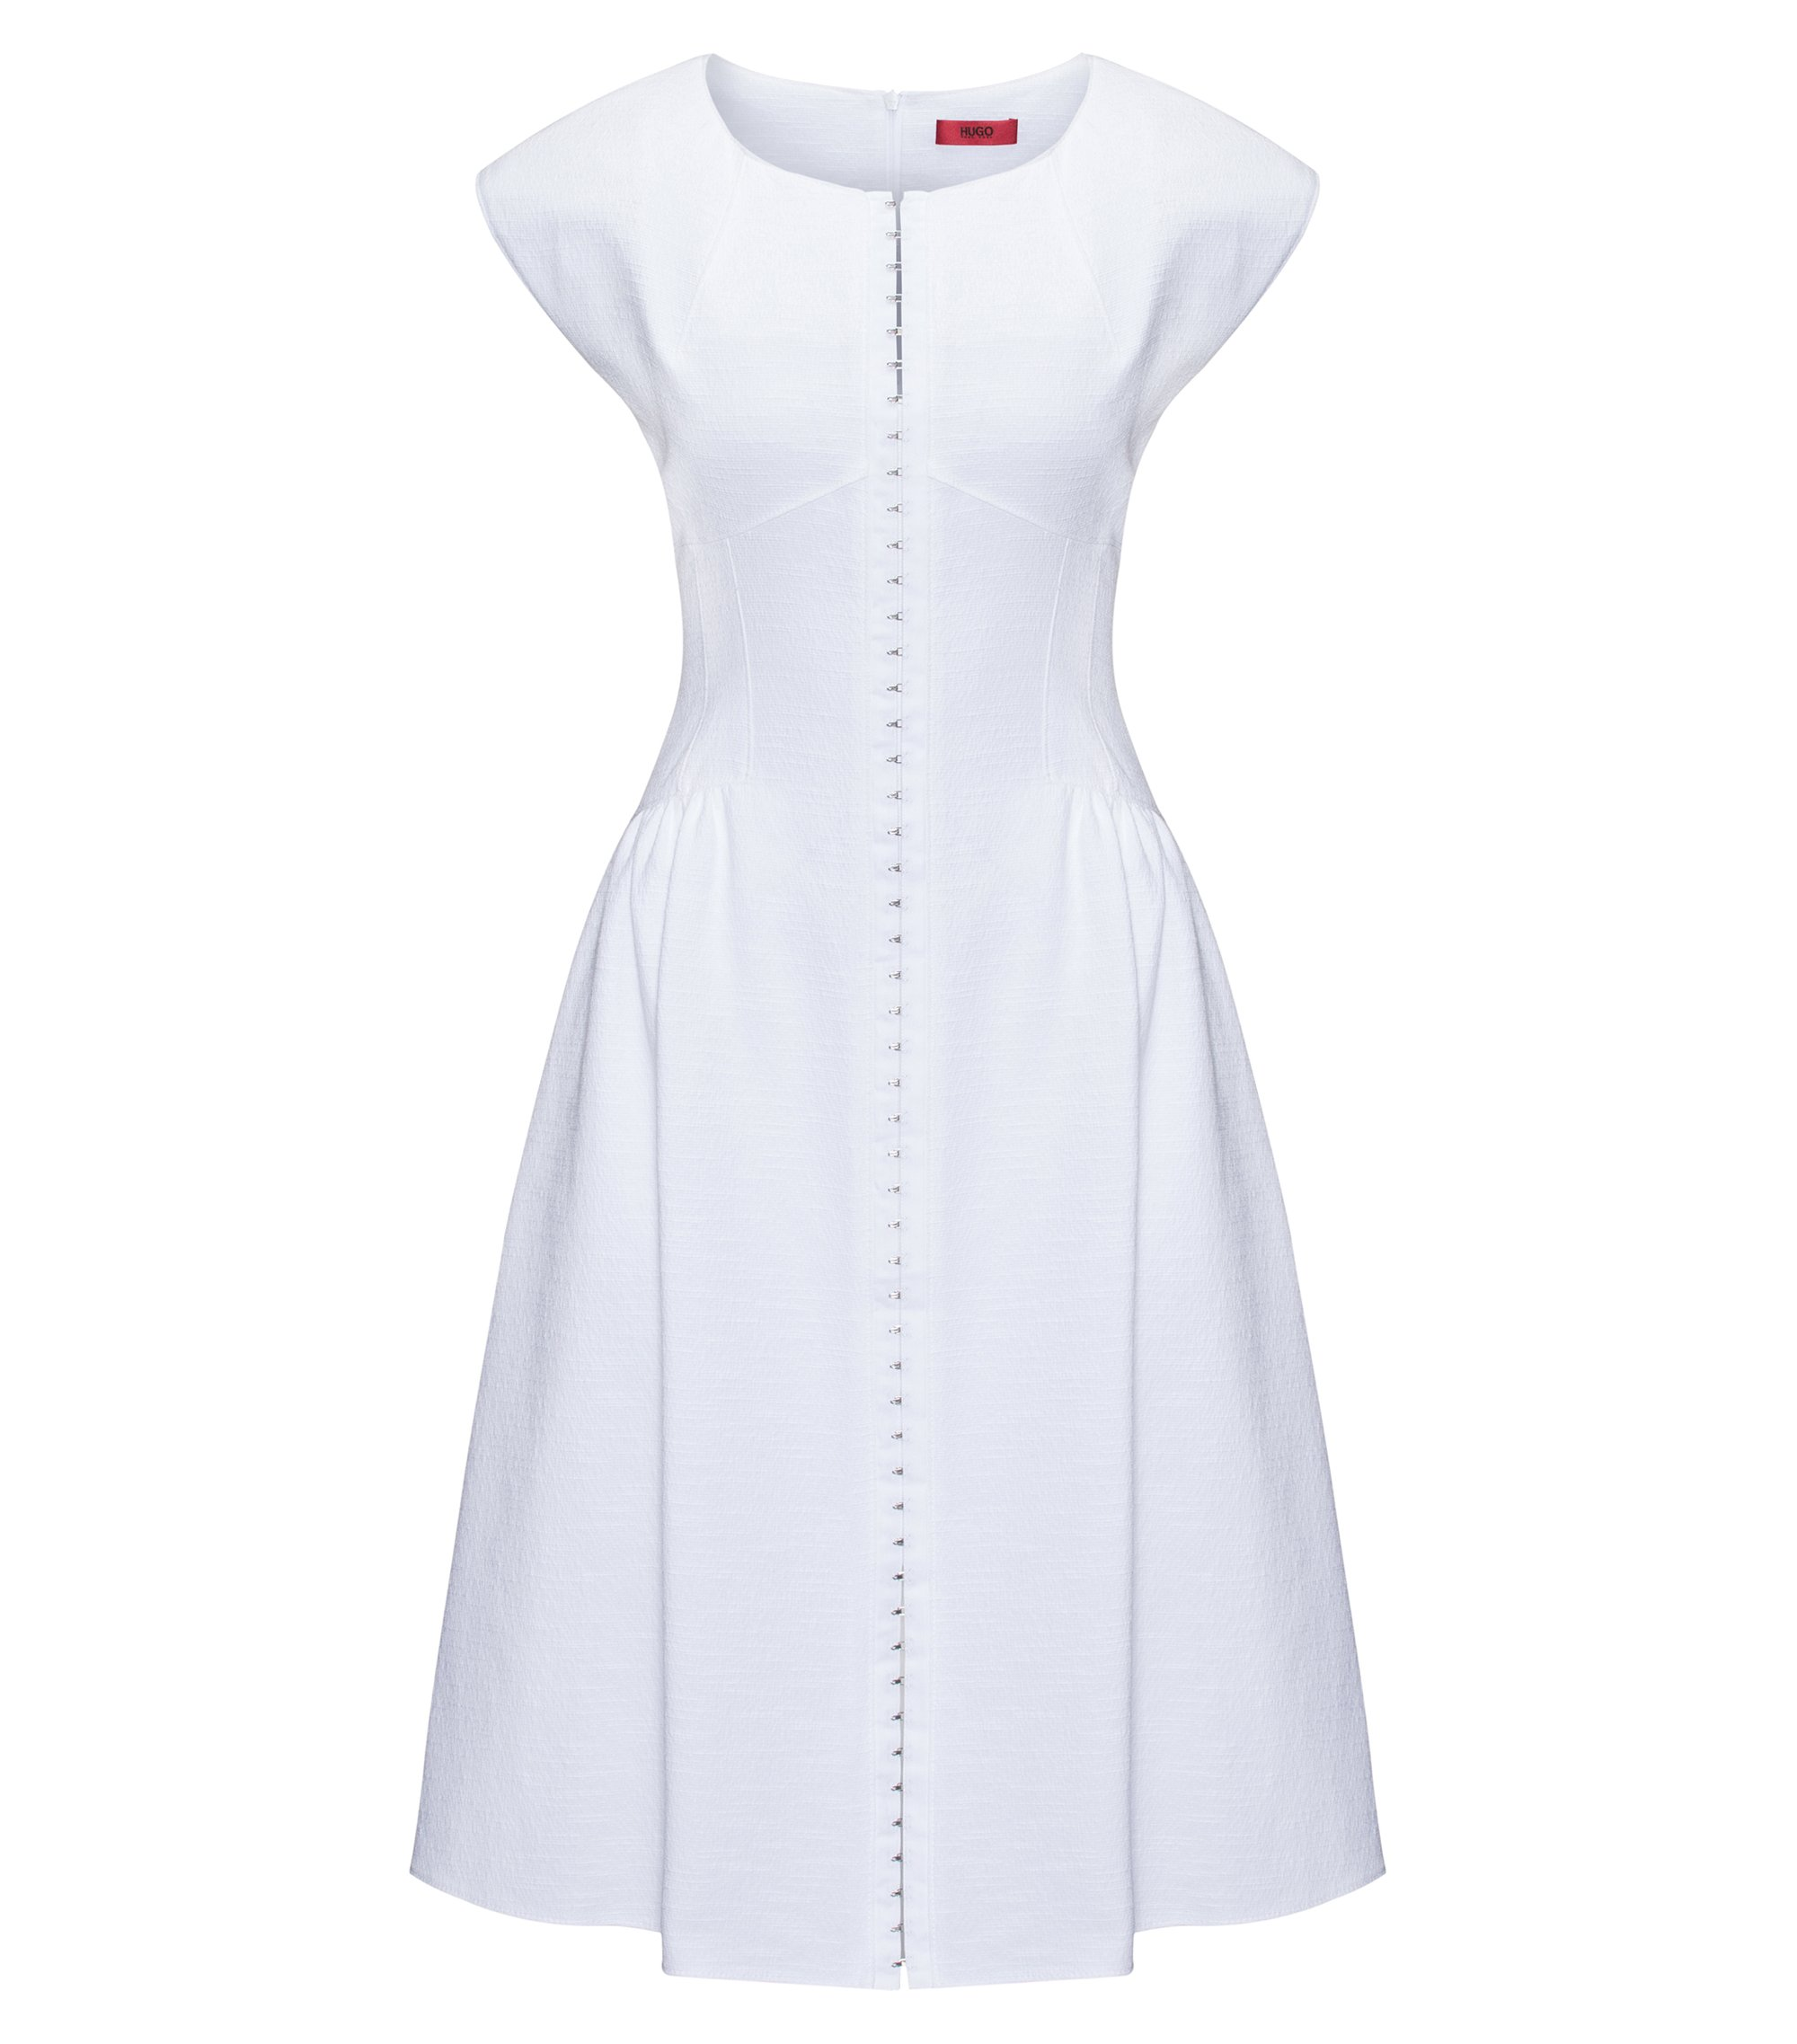 Cotton-blend dress with hook-and-eye closure, White